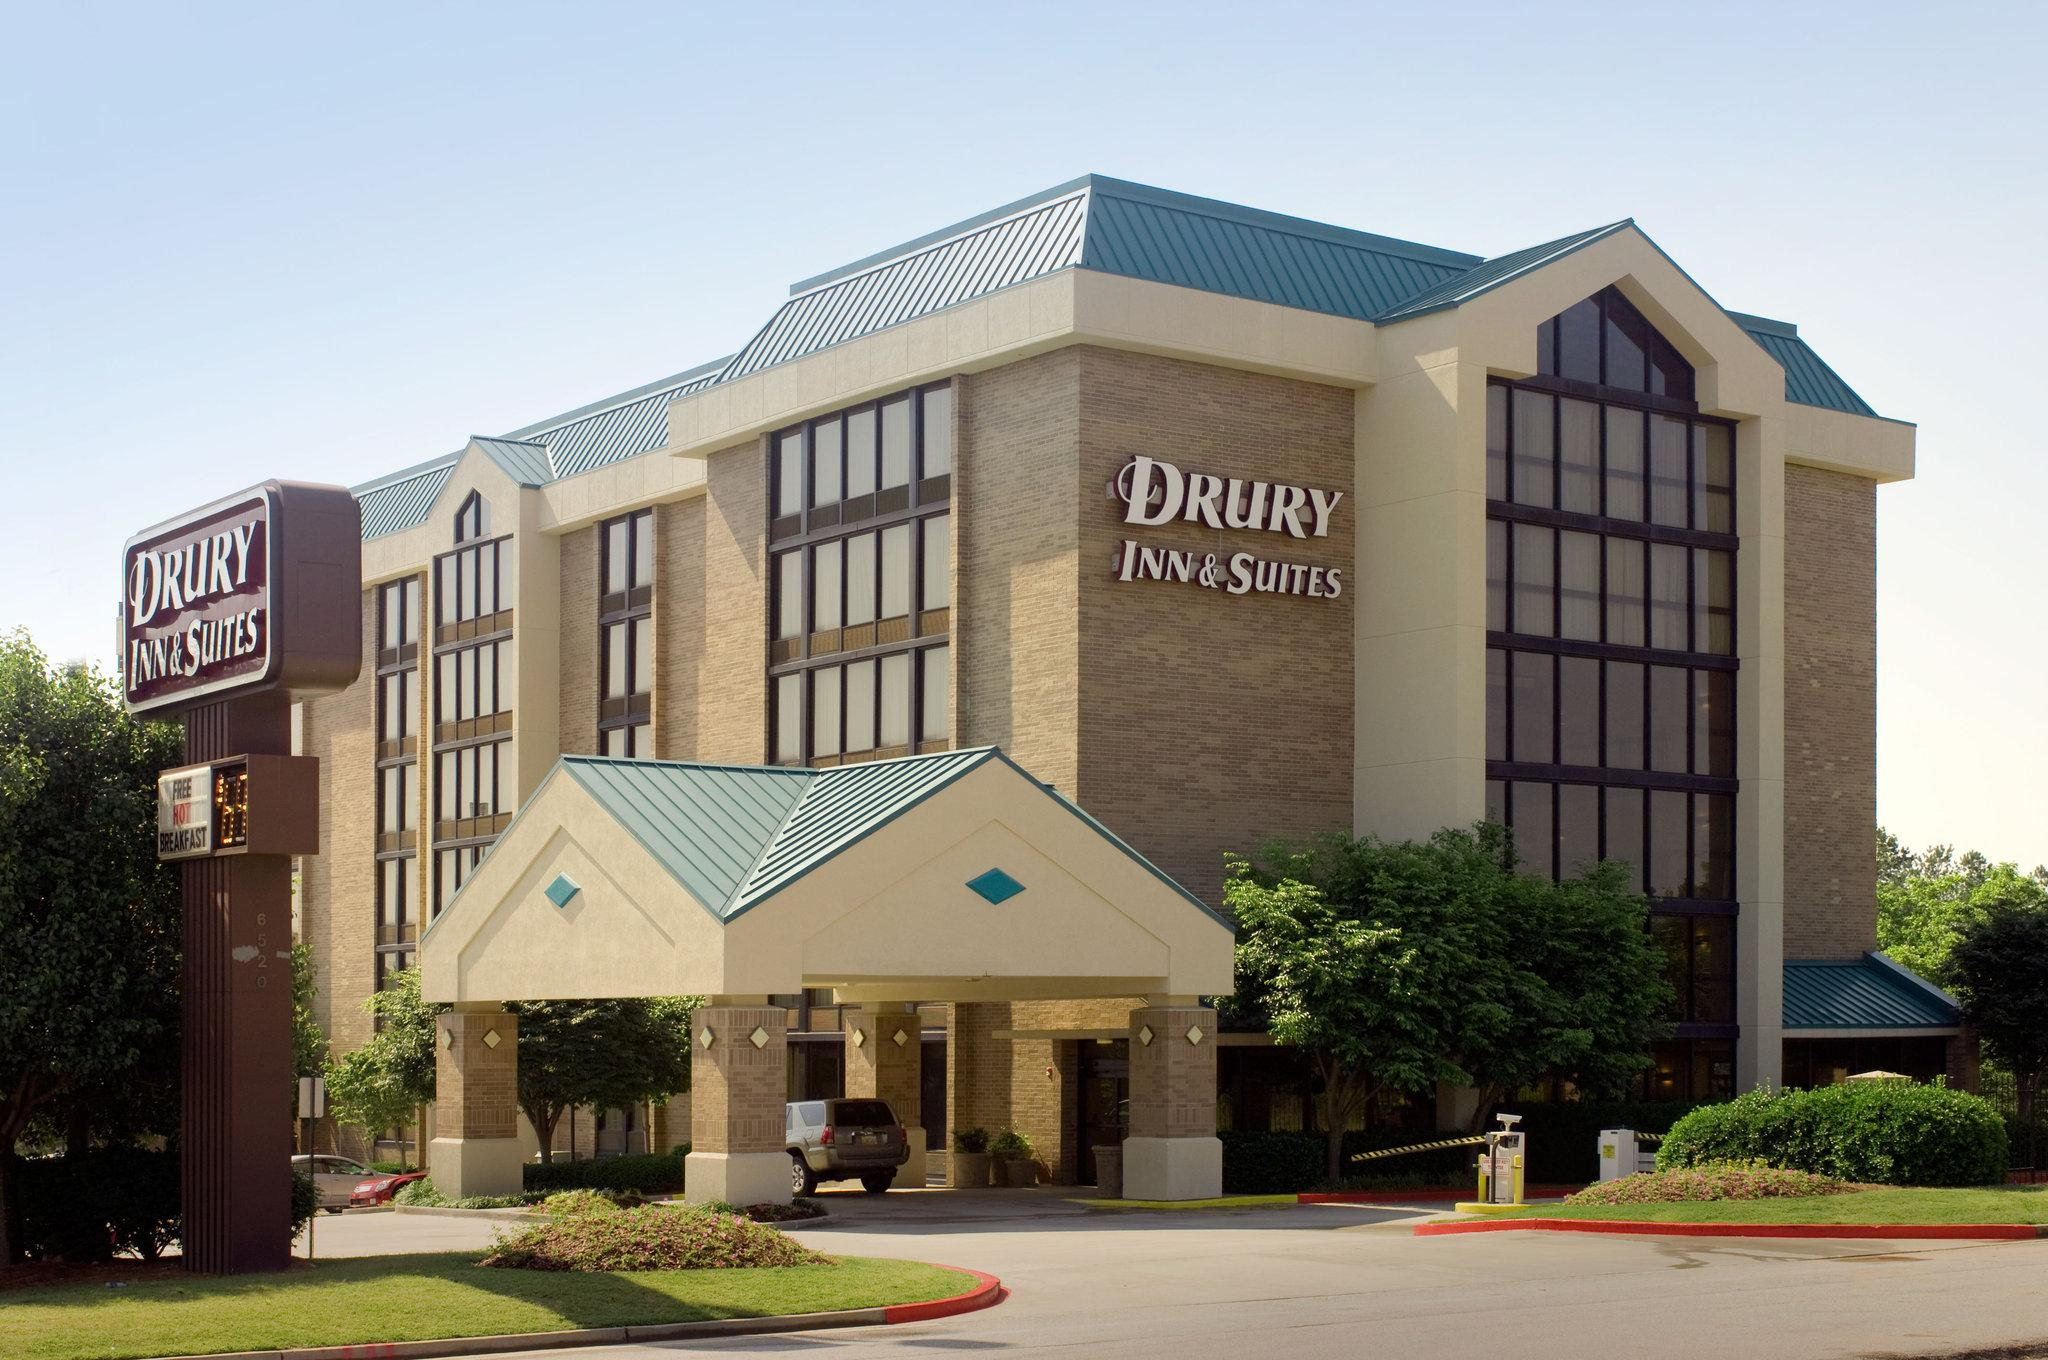 Drury Inn & Suites Atlanta South